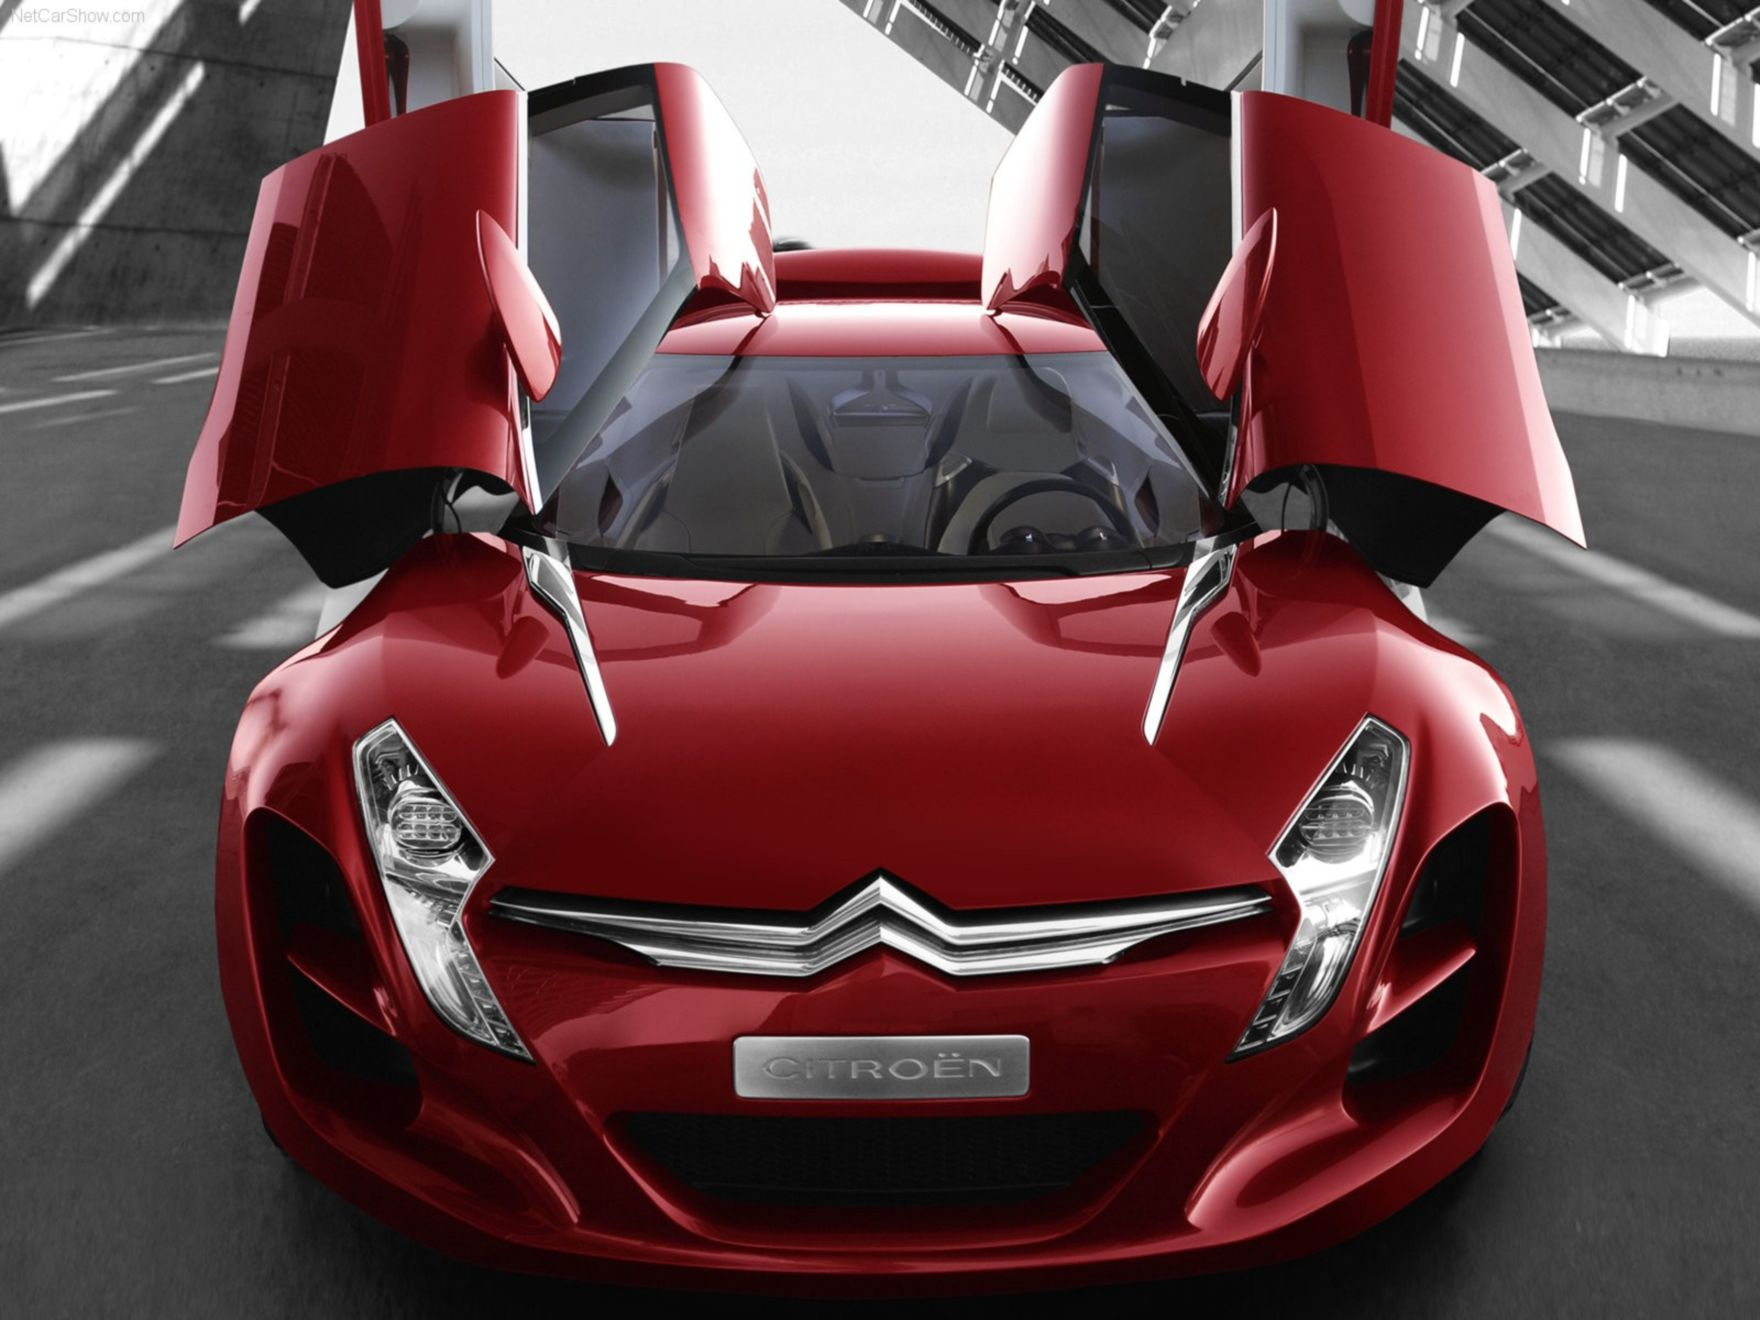 Download free HD Citroen Concept Car Normal Wallpaper, image